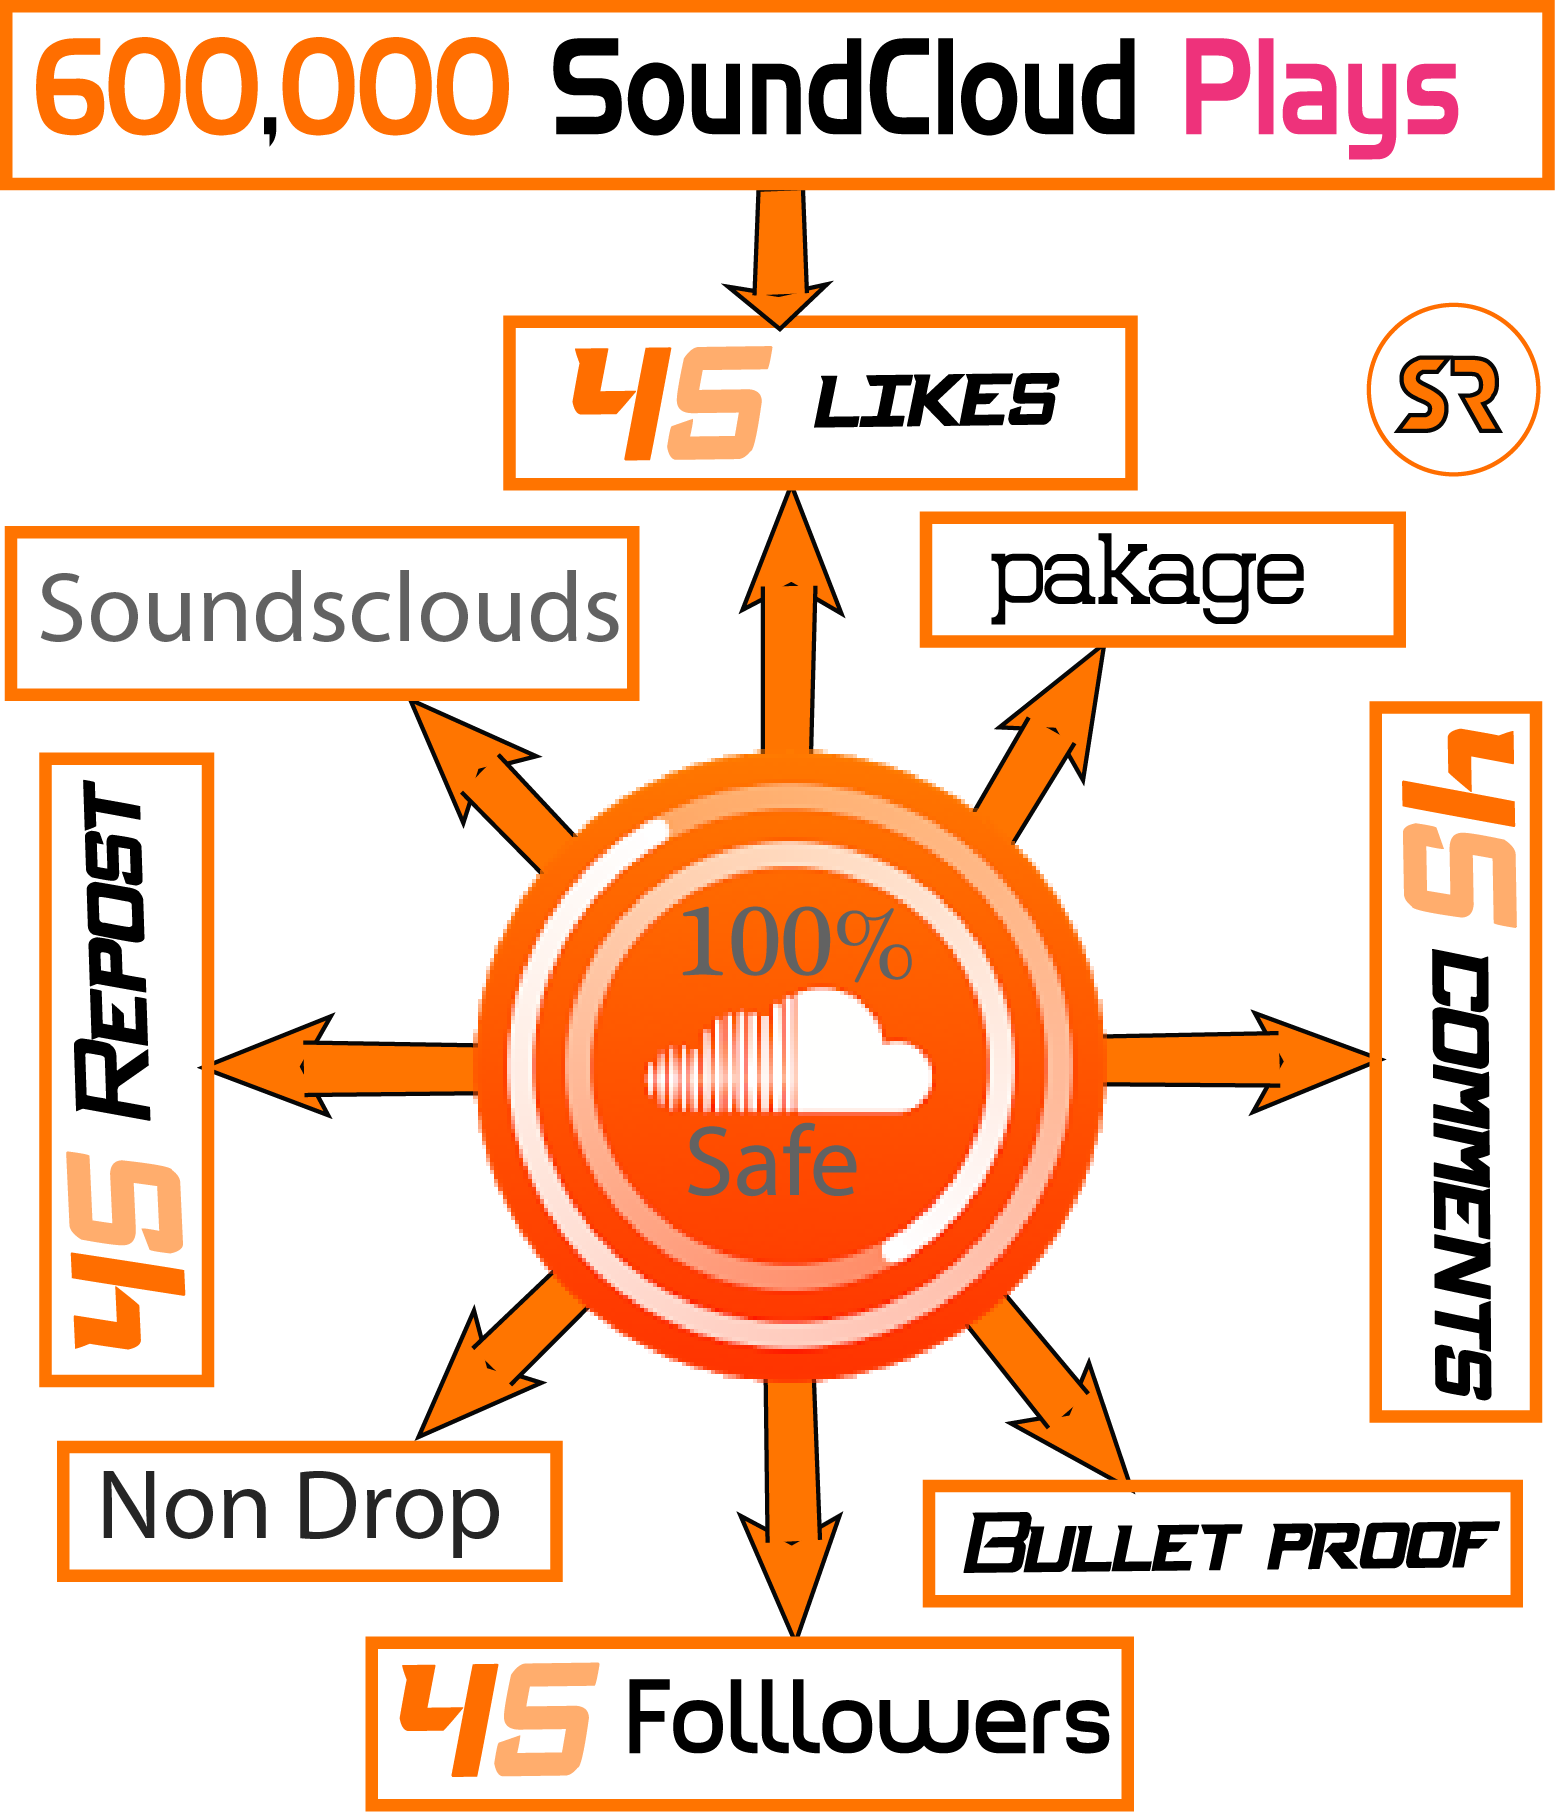 600,000 SoundCloud Plays with 50 Likes, 50 Comments, 50 Reposts, 50 Follow instant star